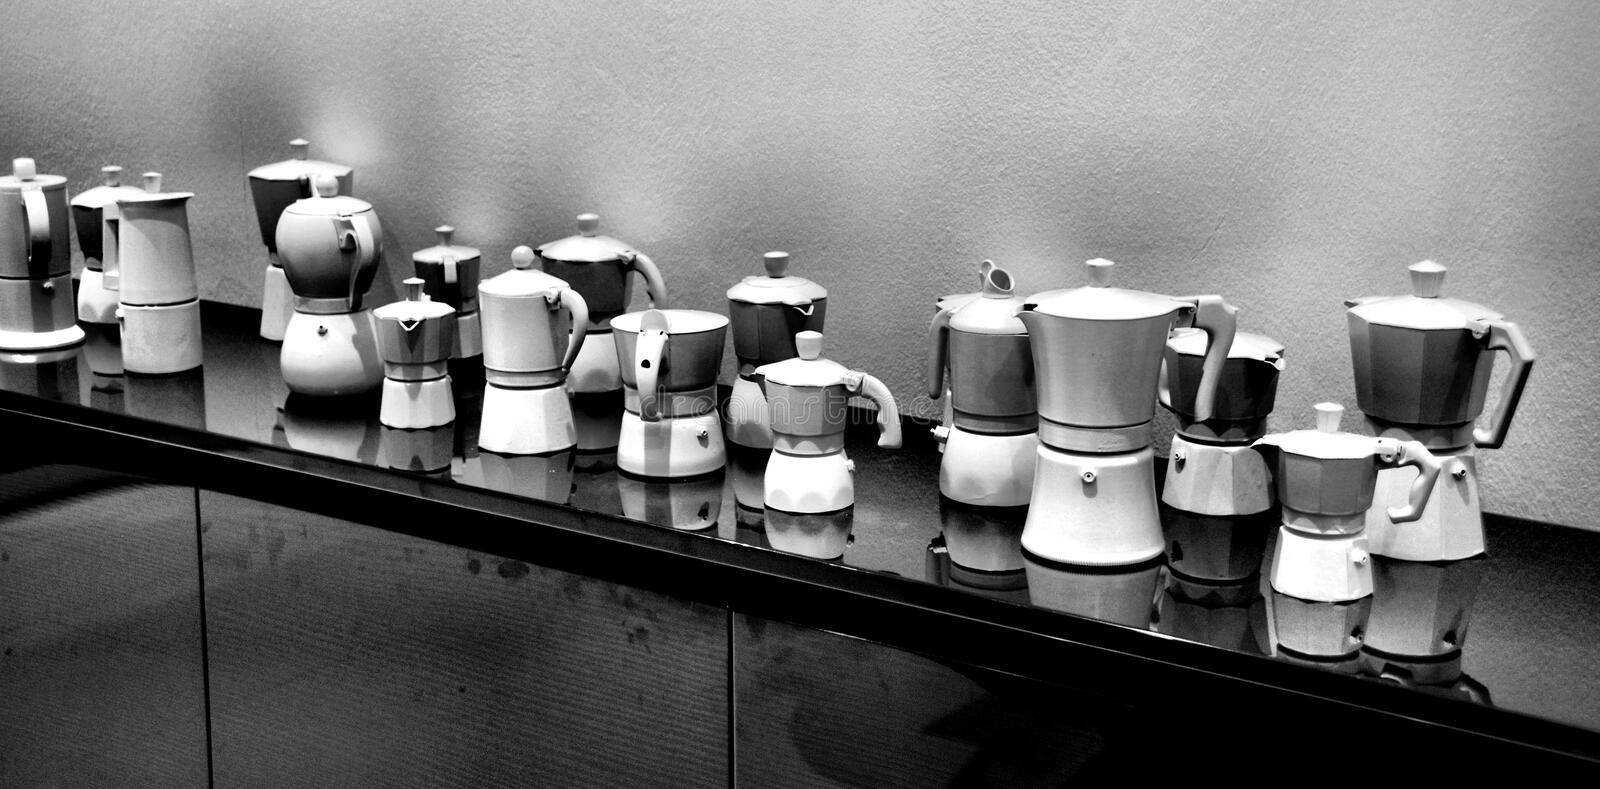 Coffee maker. Machines for coffee Neapolitan different type and form royalty free stock images